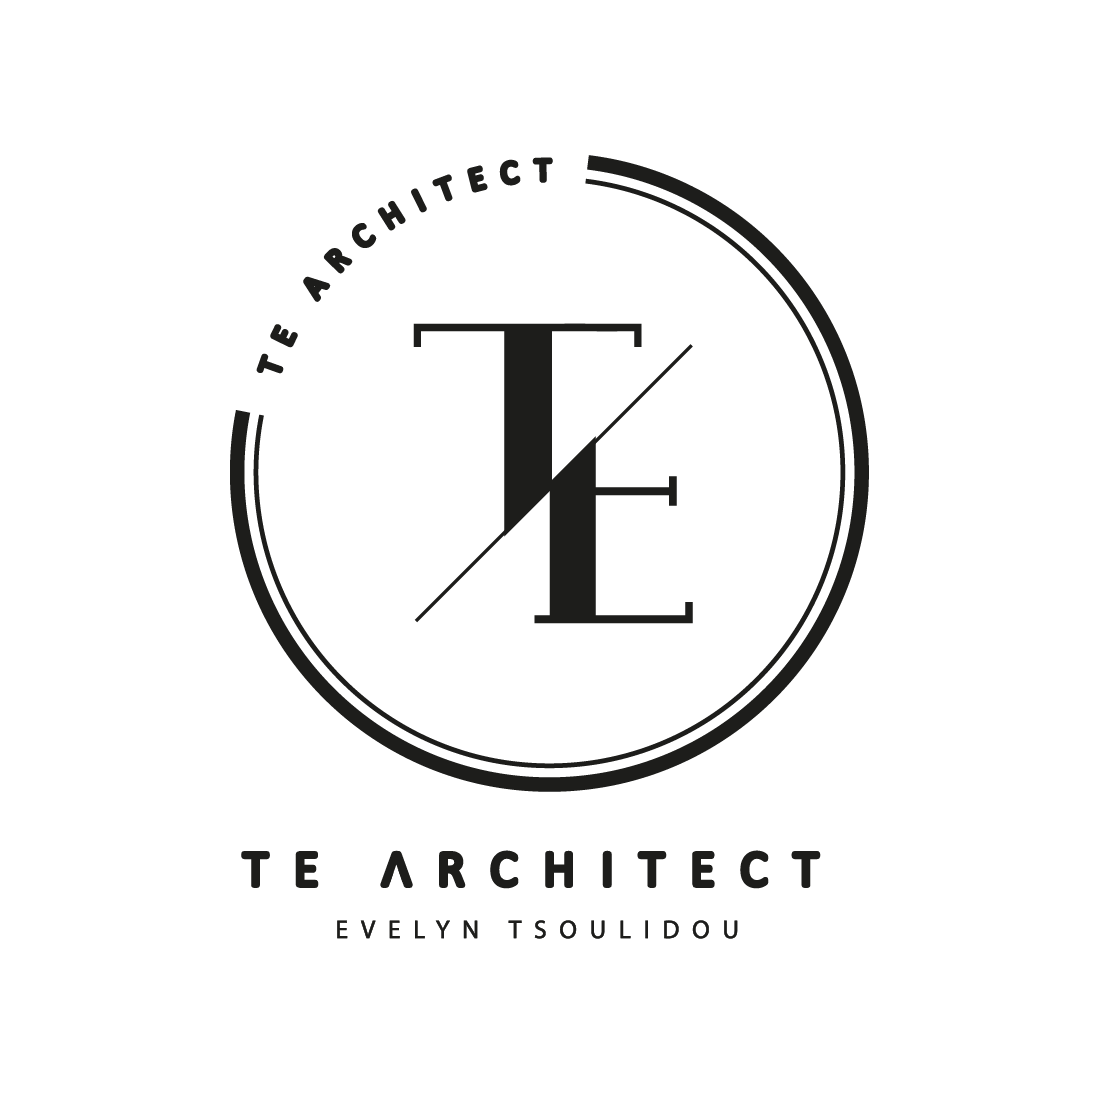 tearchitect